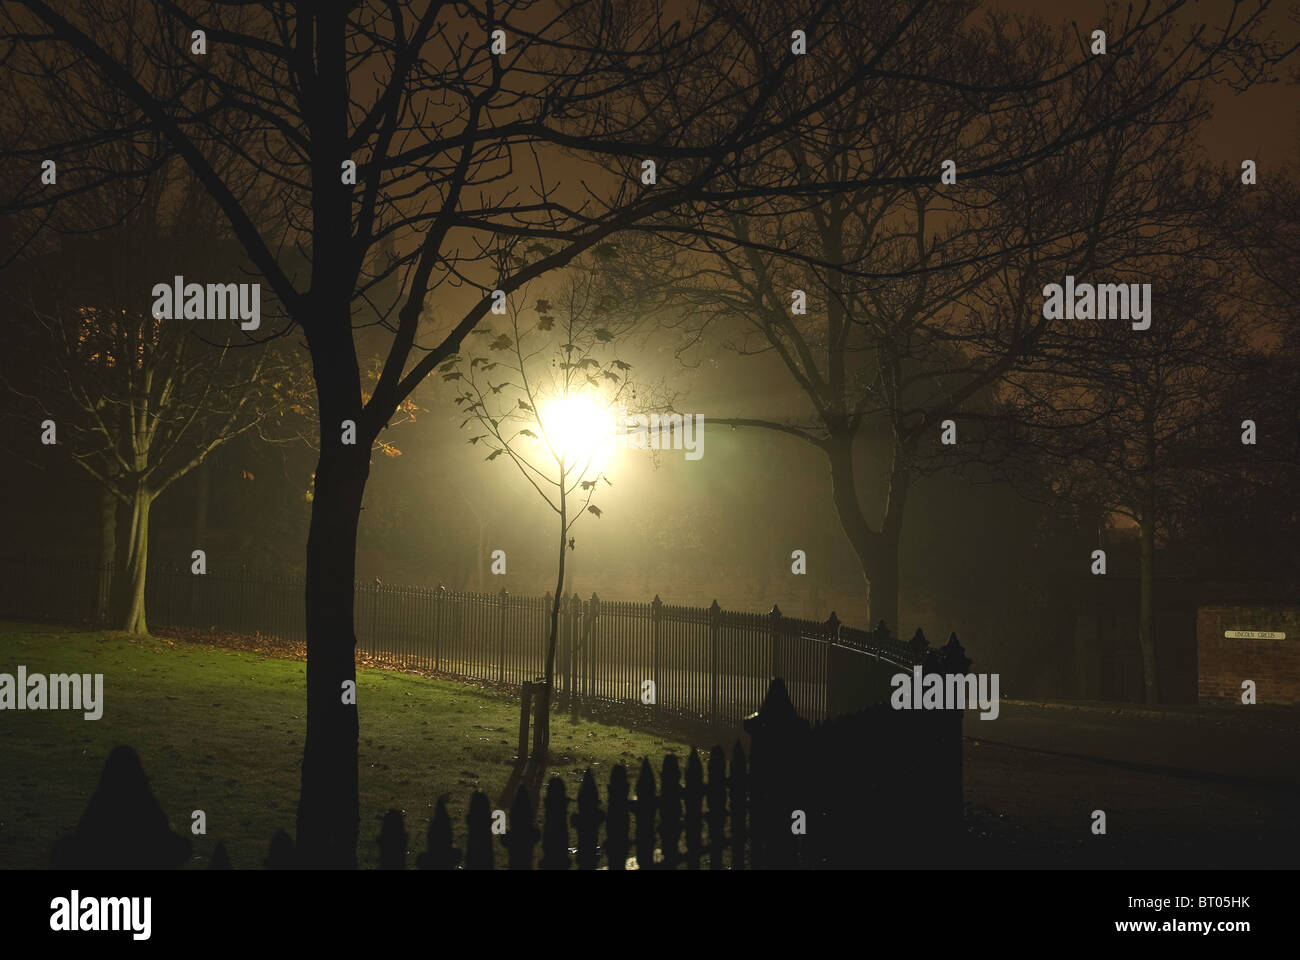 Victorian night lamps - Stock Photo Trees And Railings In A Wet Victorian Or Edwardian Street In An Urban Estate On A Dark And Foggy Night Illuminated By Gas Lamps